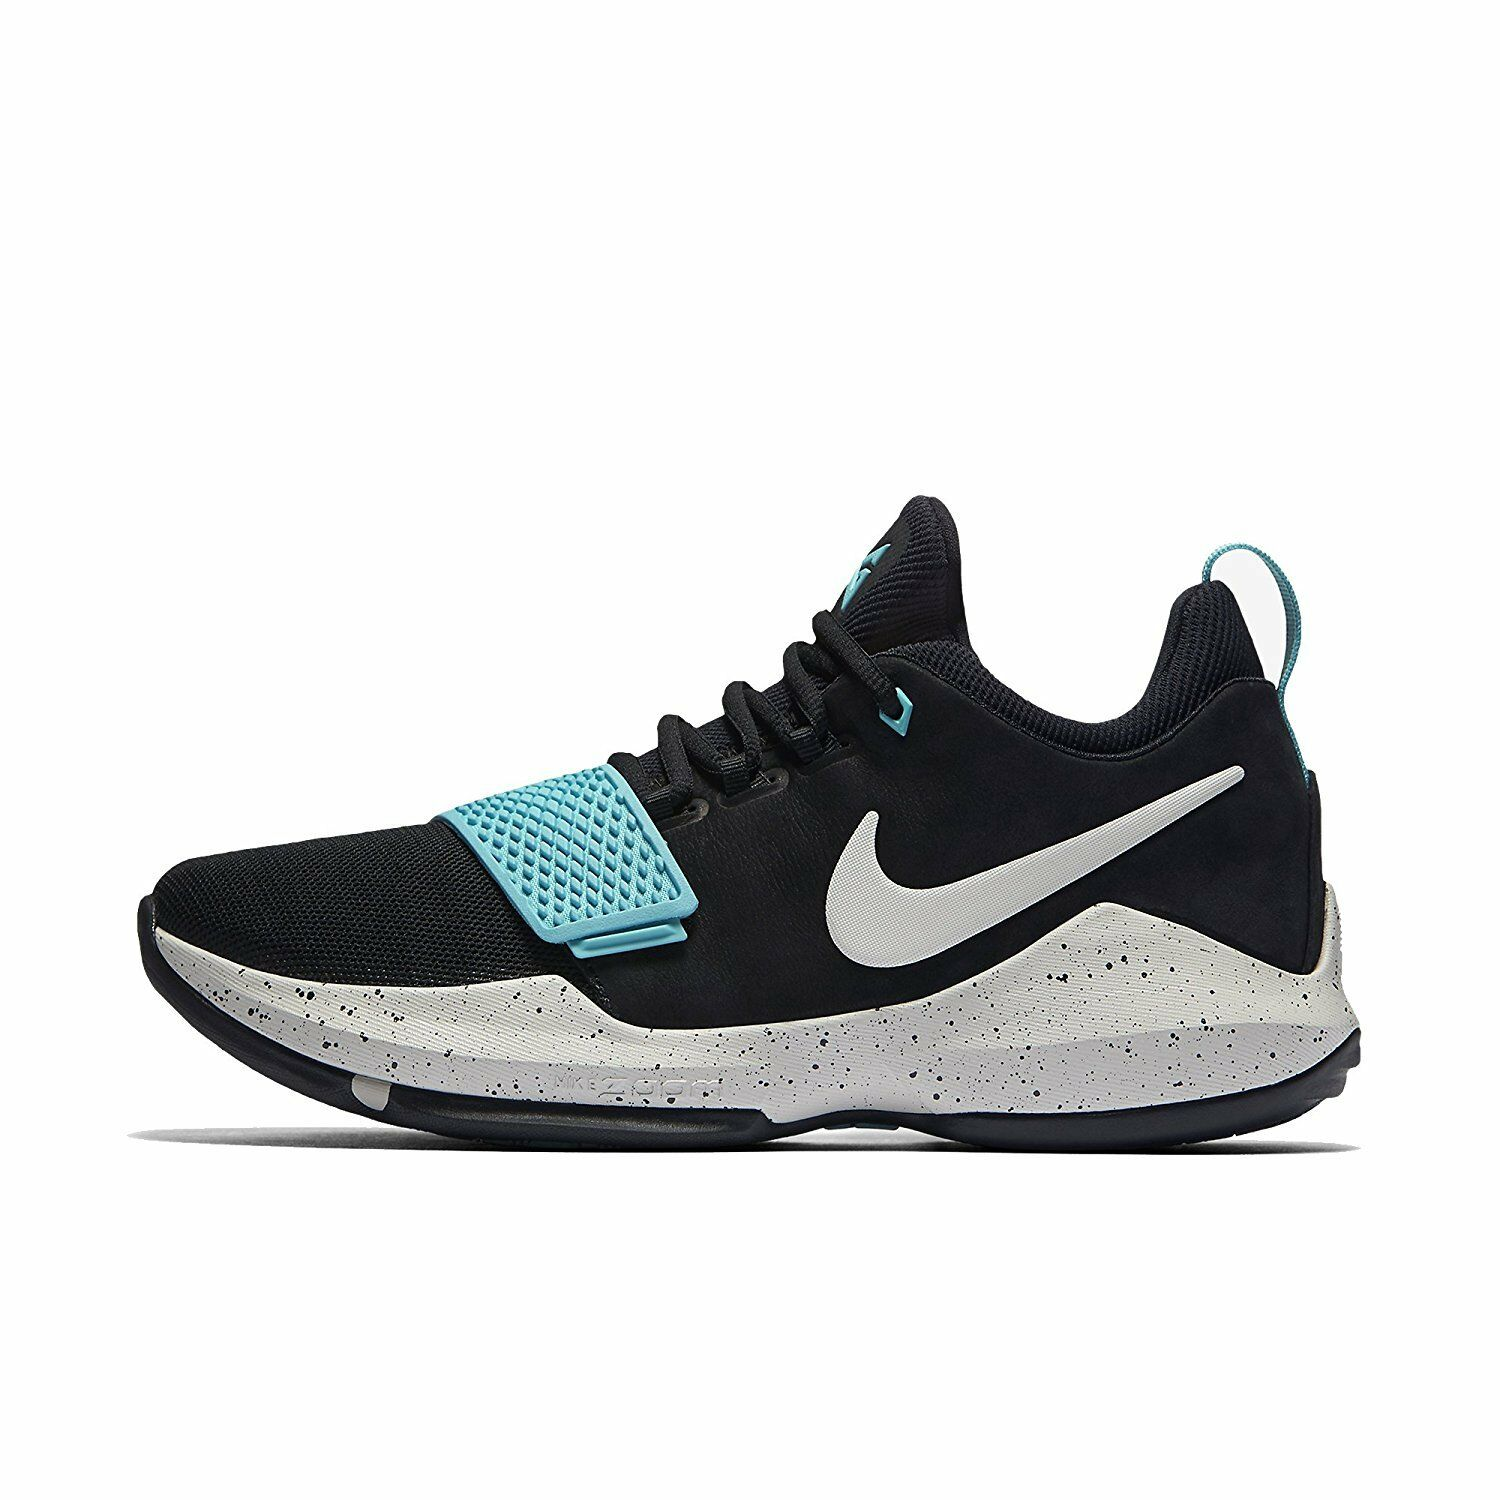 Nike Light PG 1 Negro / Light Bone Light Nike Aqua reducción de precio daaafc